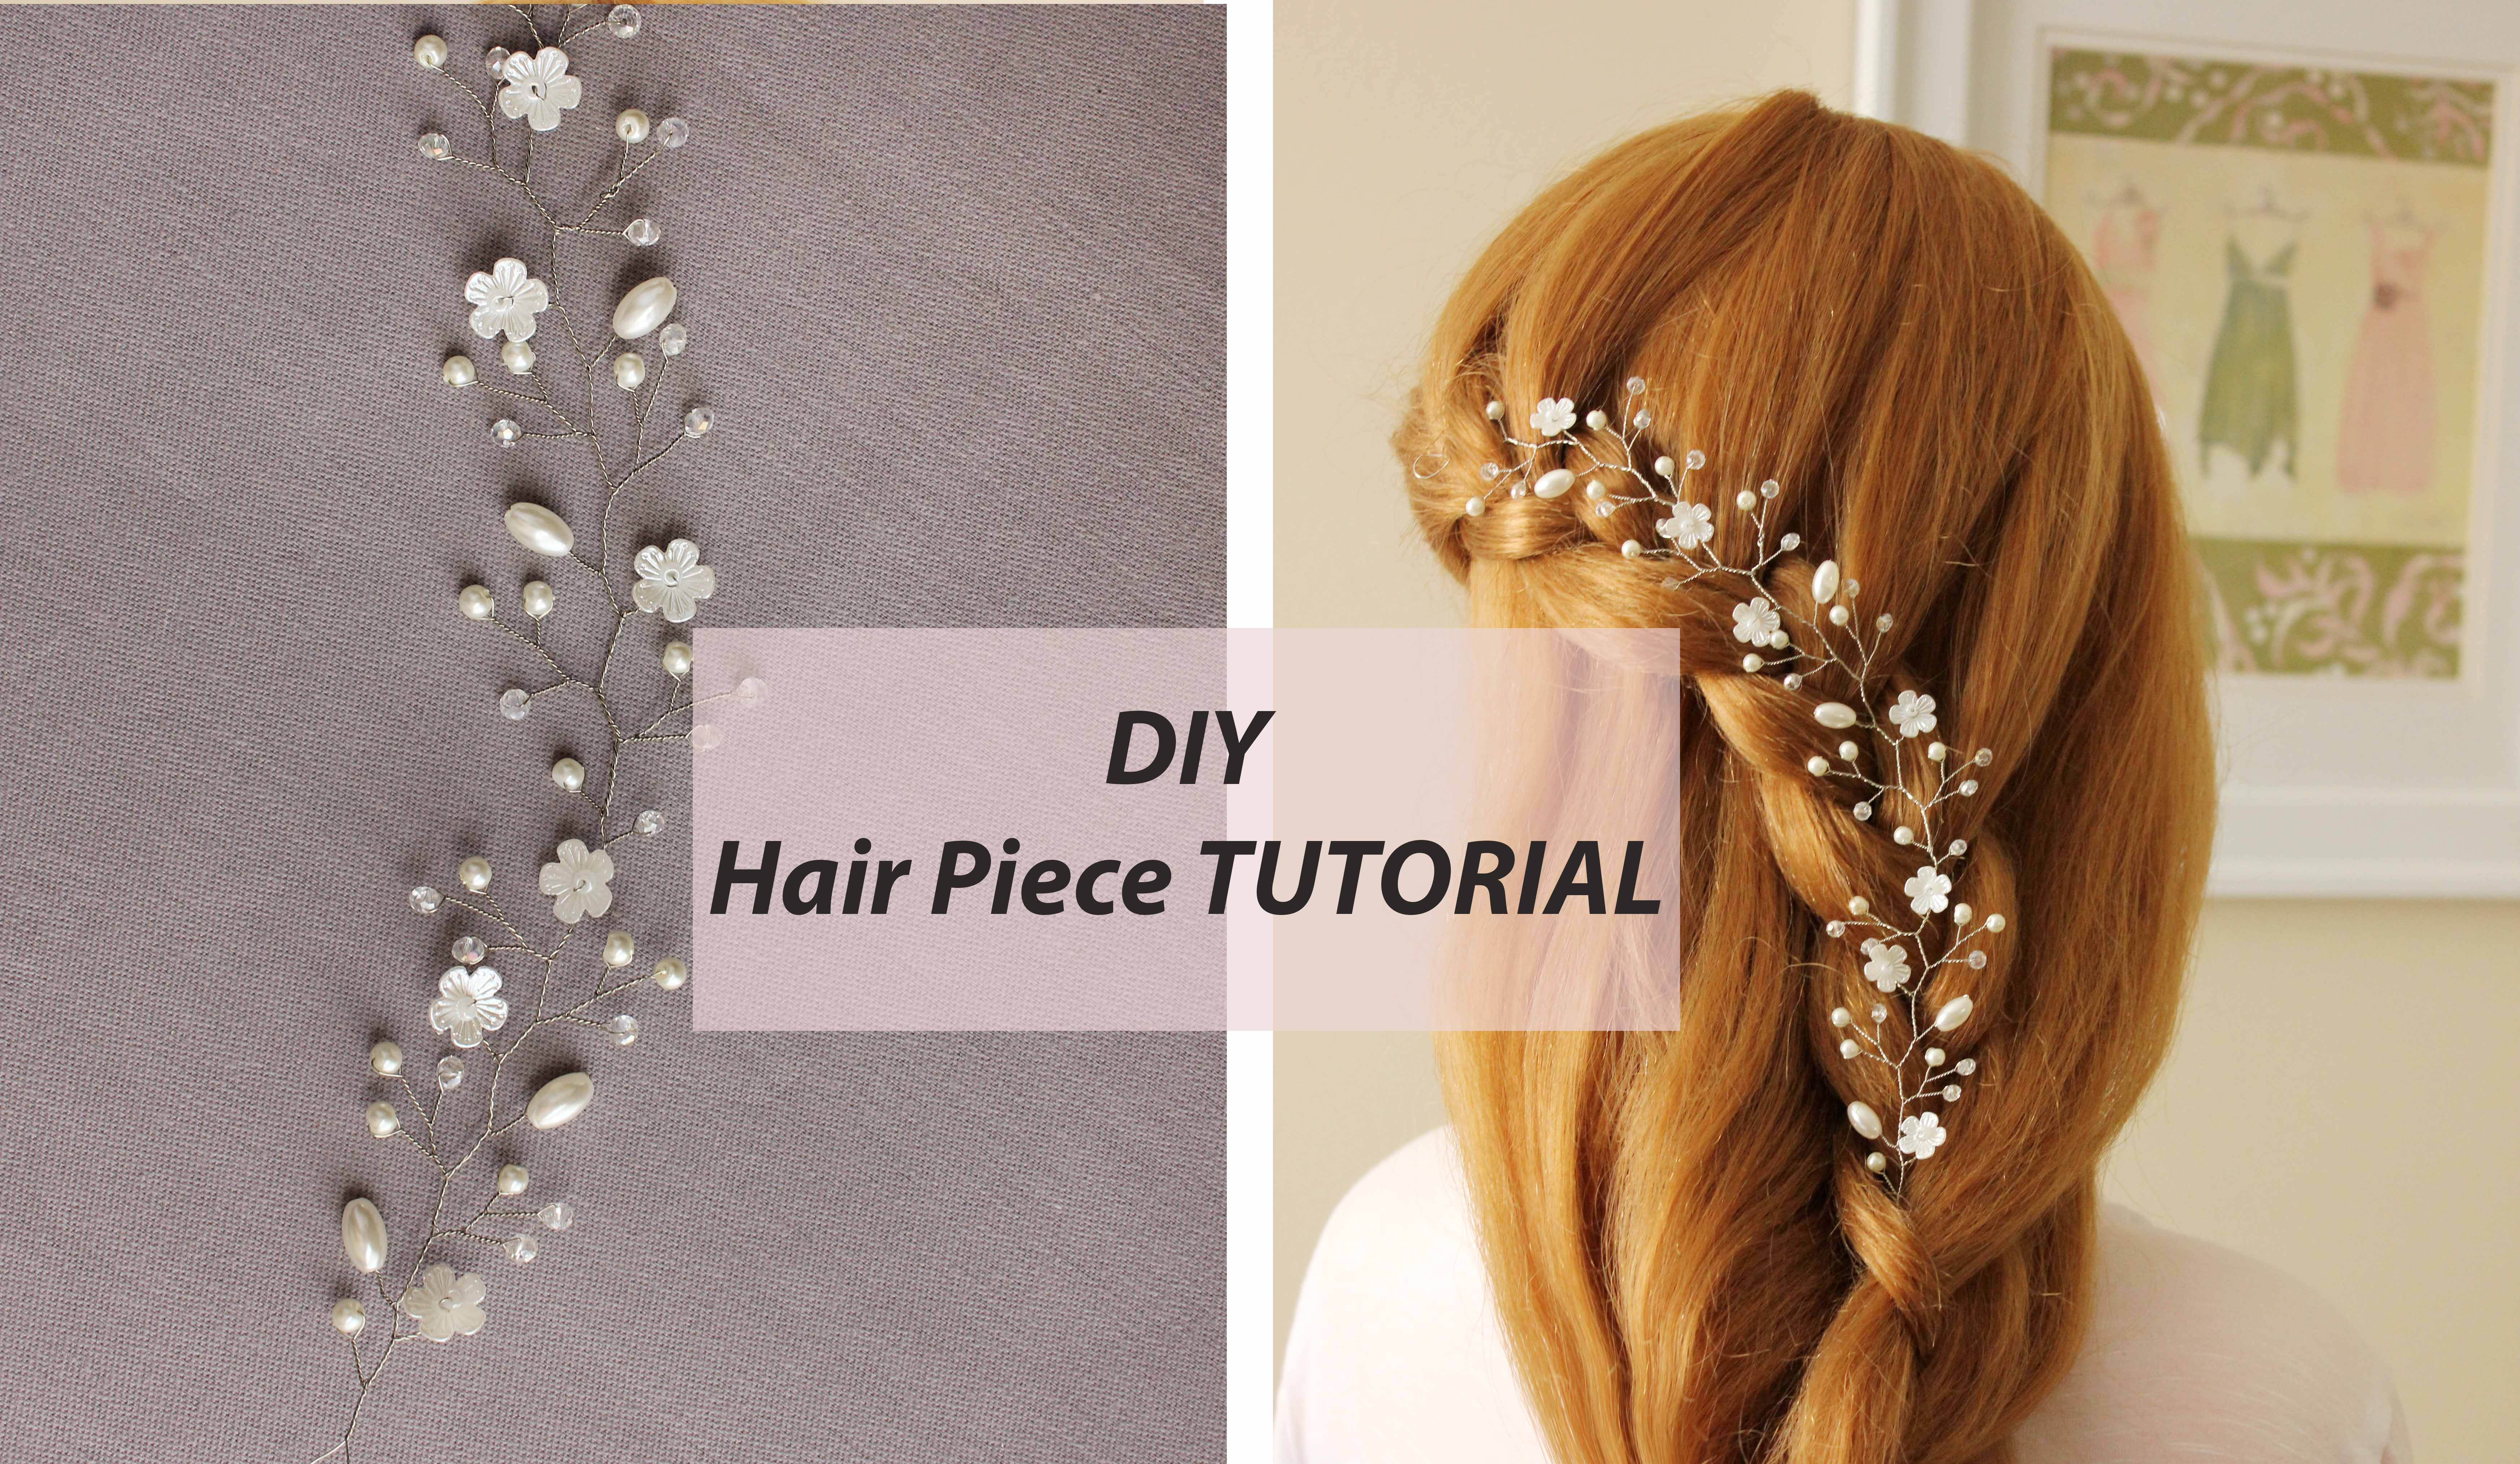 annlace - page 2 of 2 - diy tutorials hair accessories, hair styles